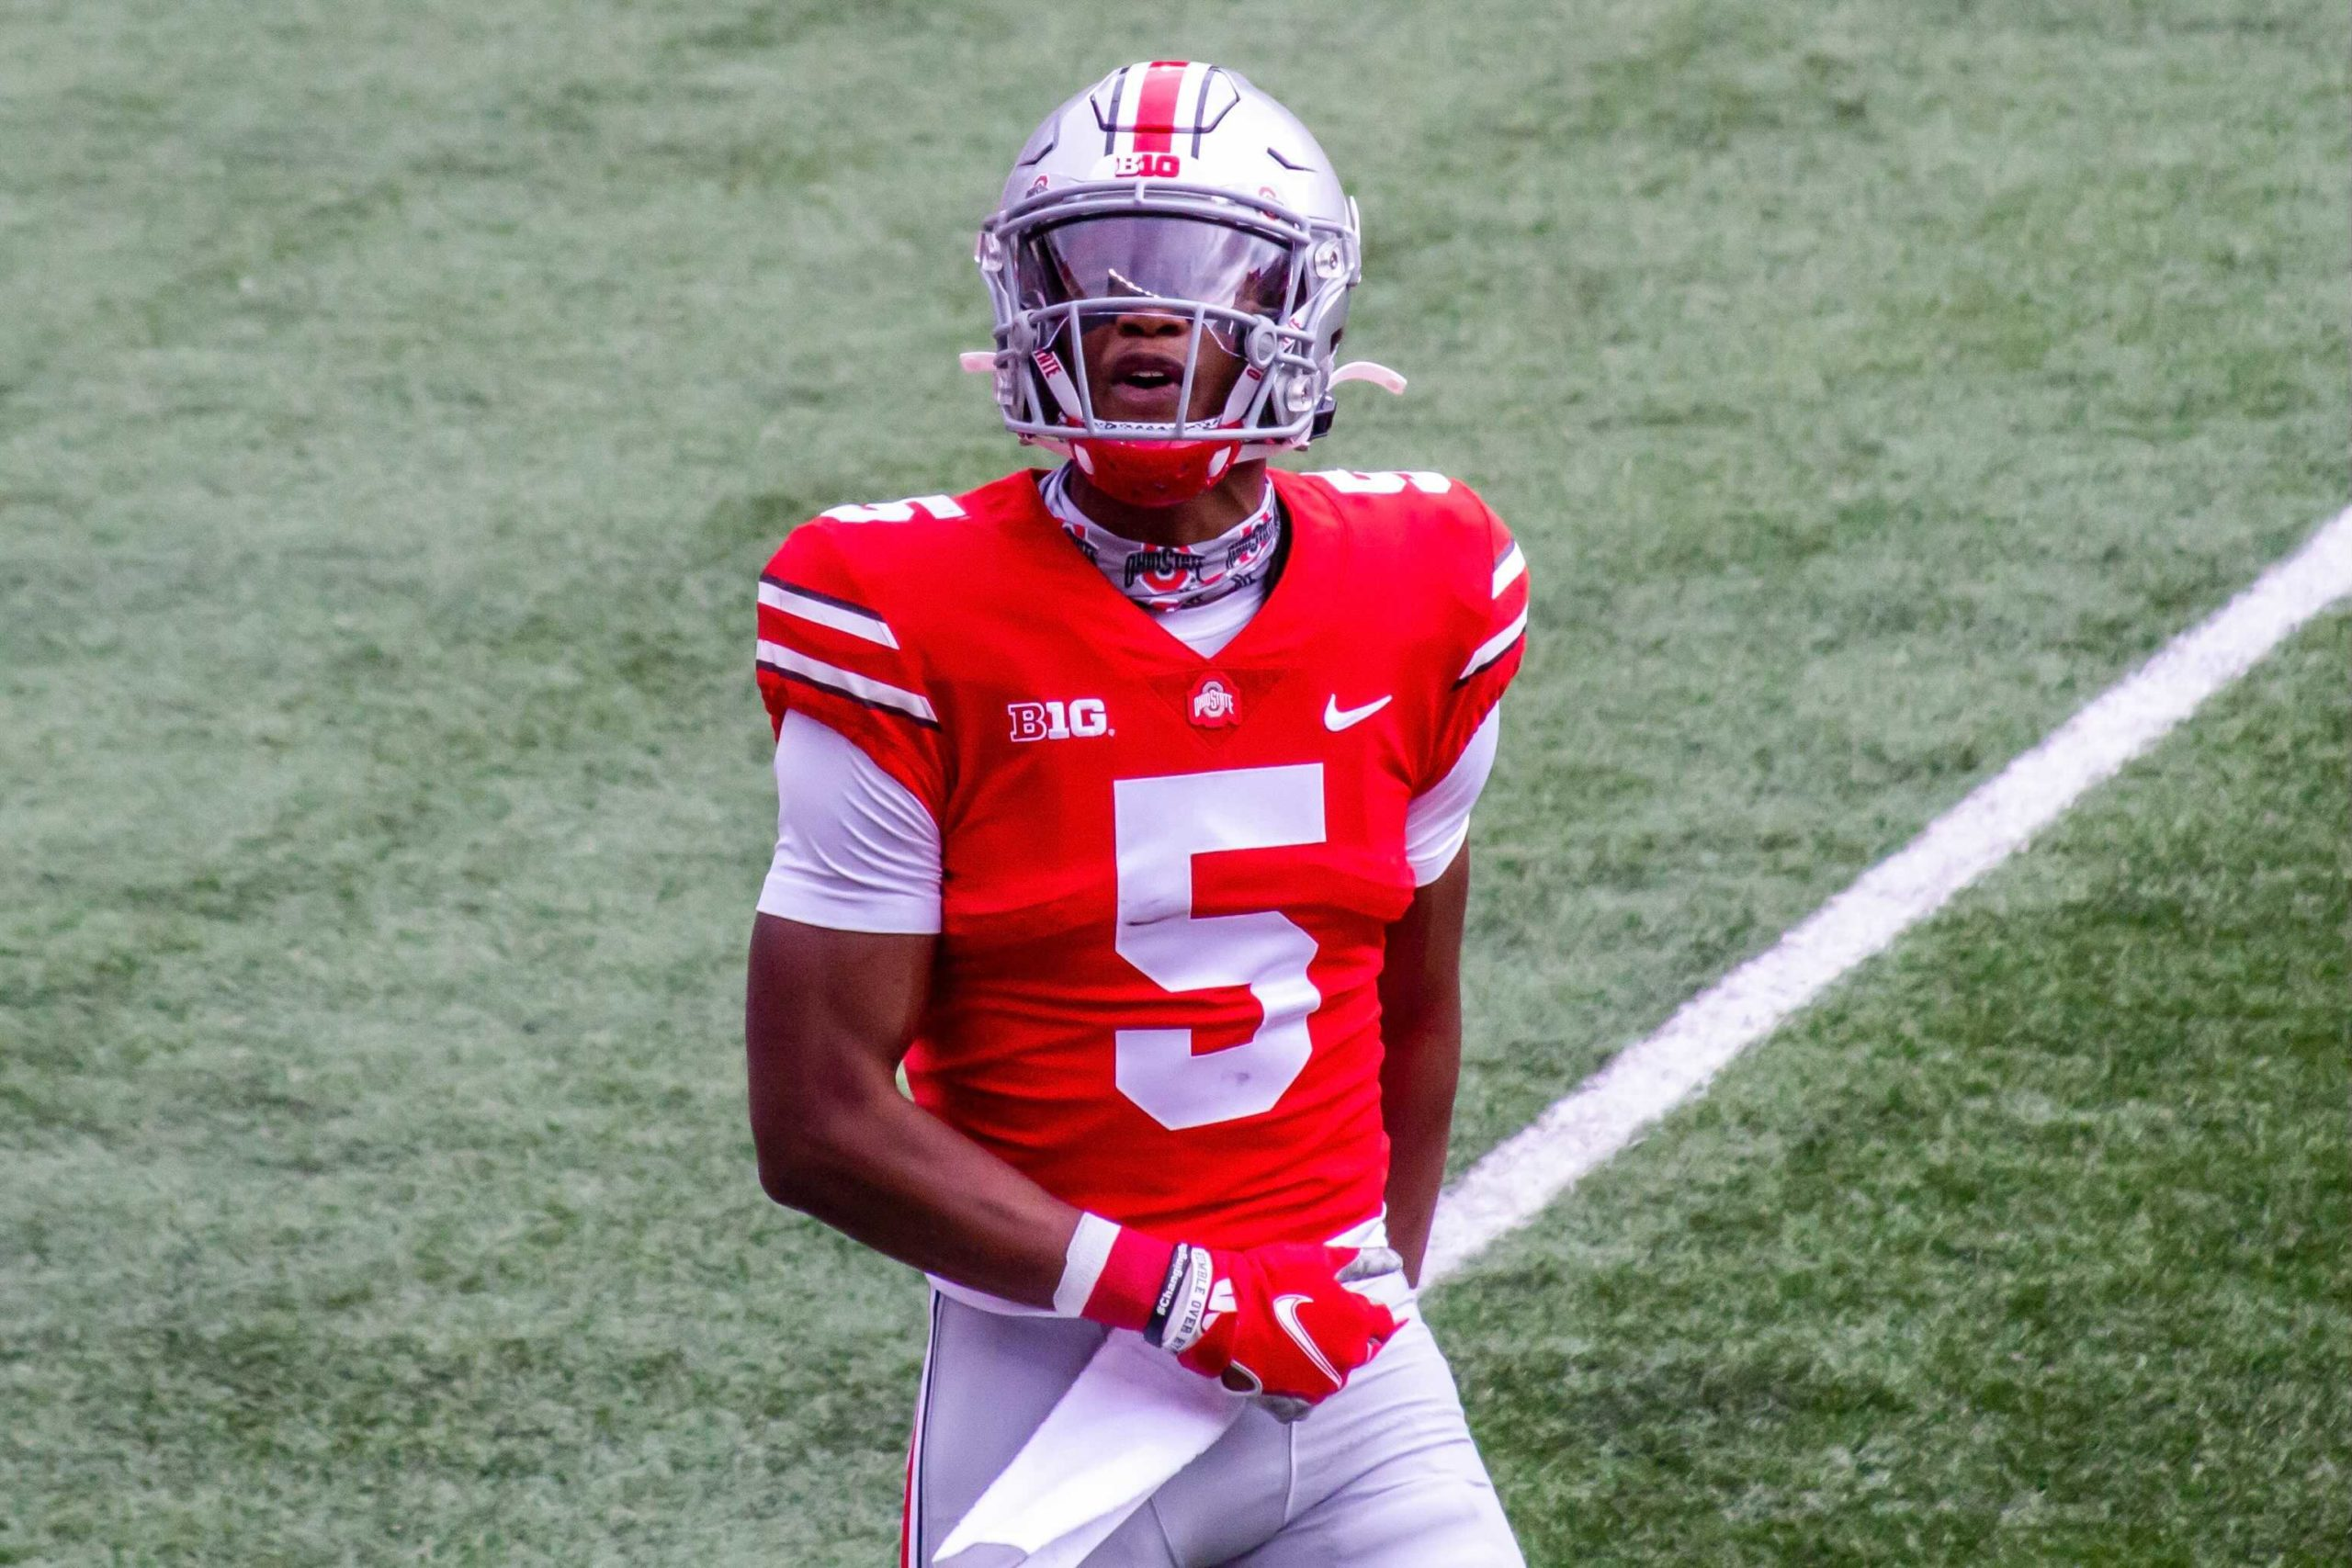 Buckeye Leaves Justin Fields Haskell Garrett Chris Olave Garrett Wilson Stand Out In Ohio State S 52 17 Victory Over Nebraska Buckeye Sports Bulletin